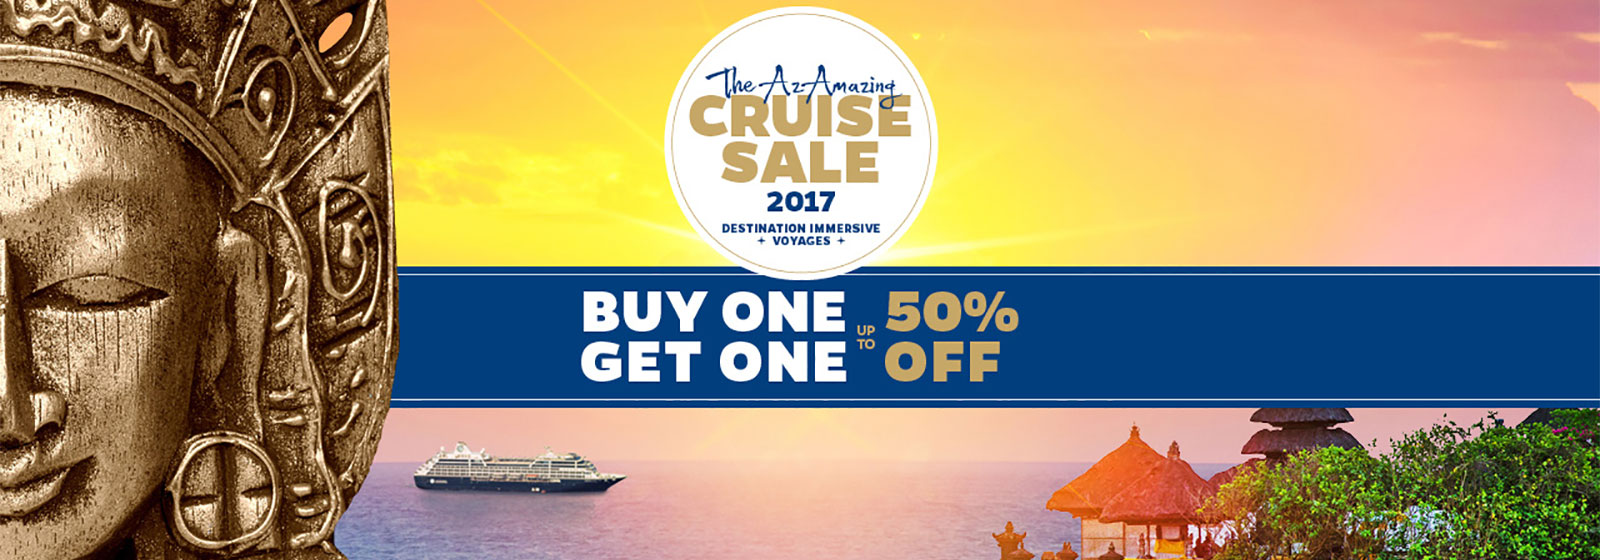 Azamazing Cruise Sale